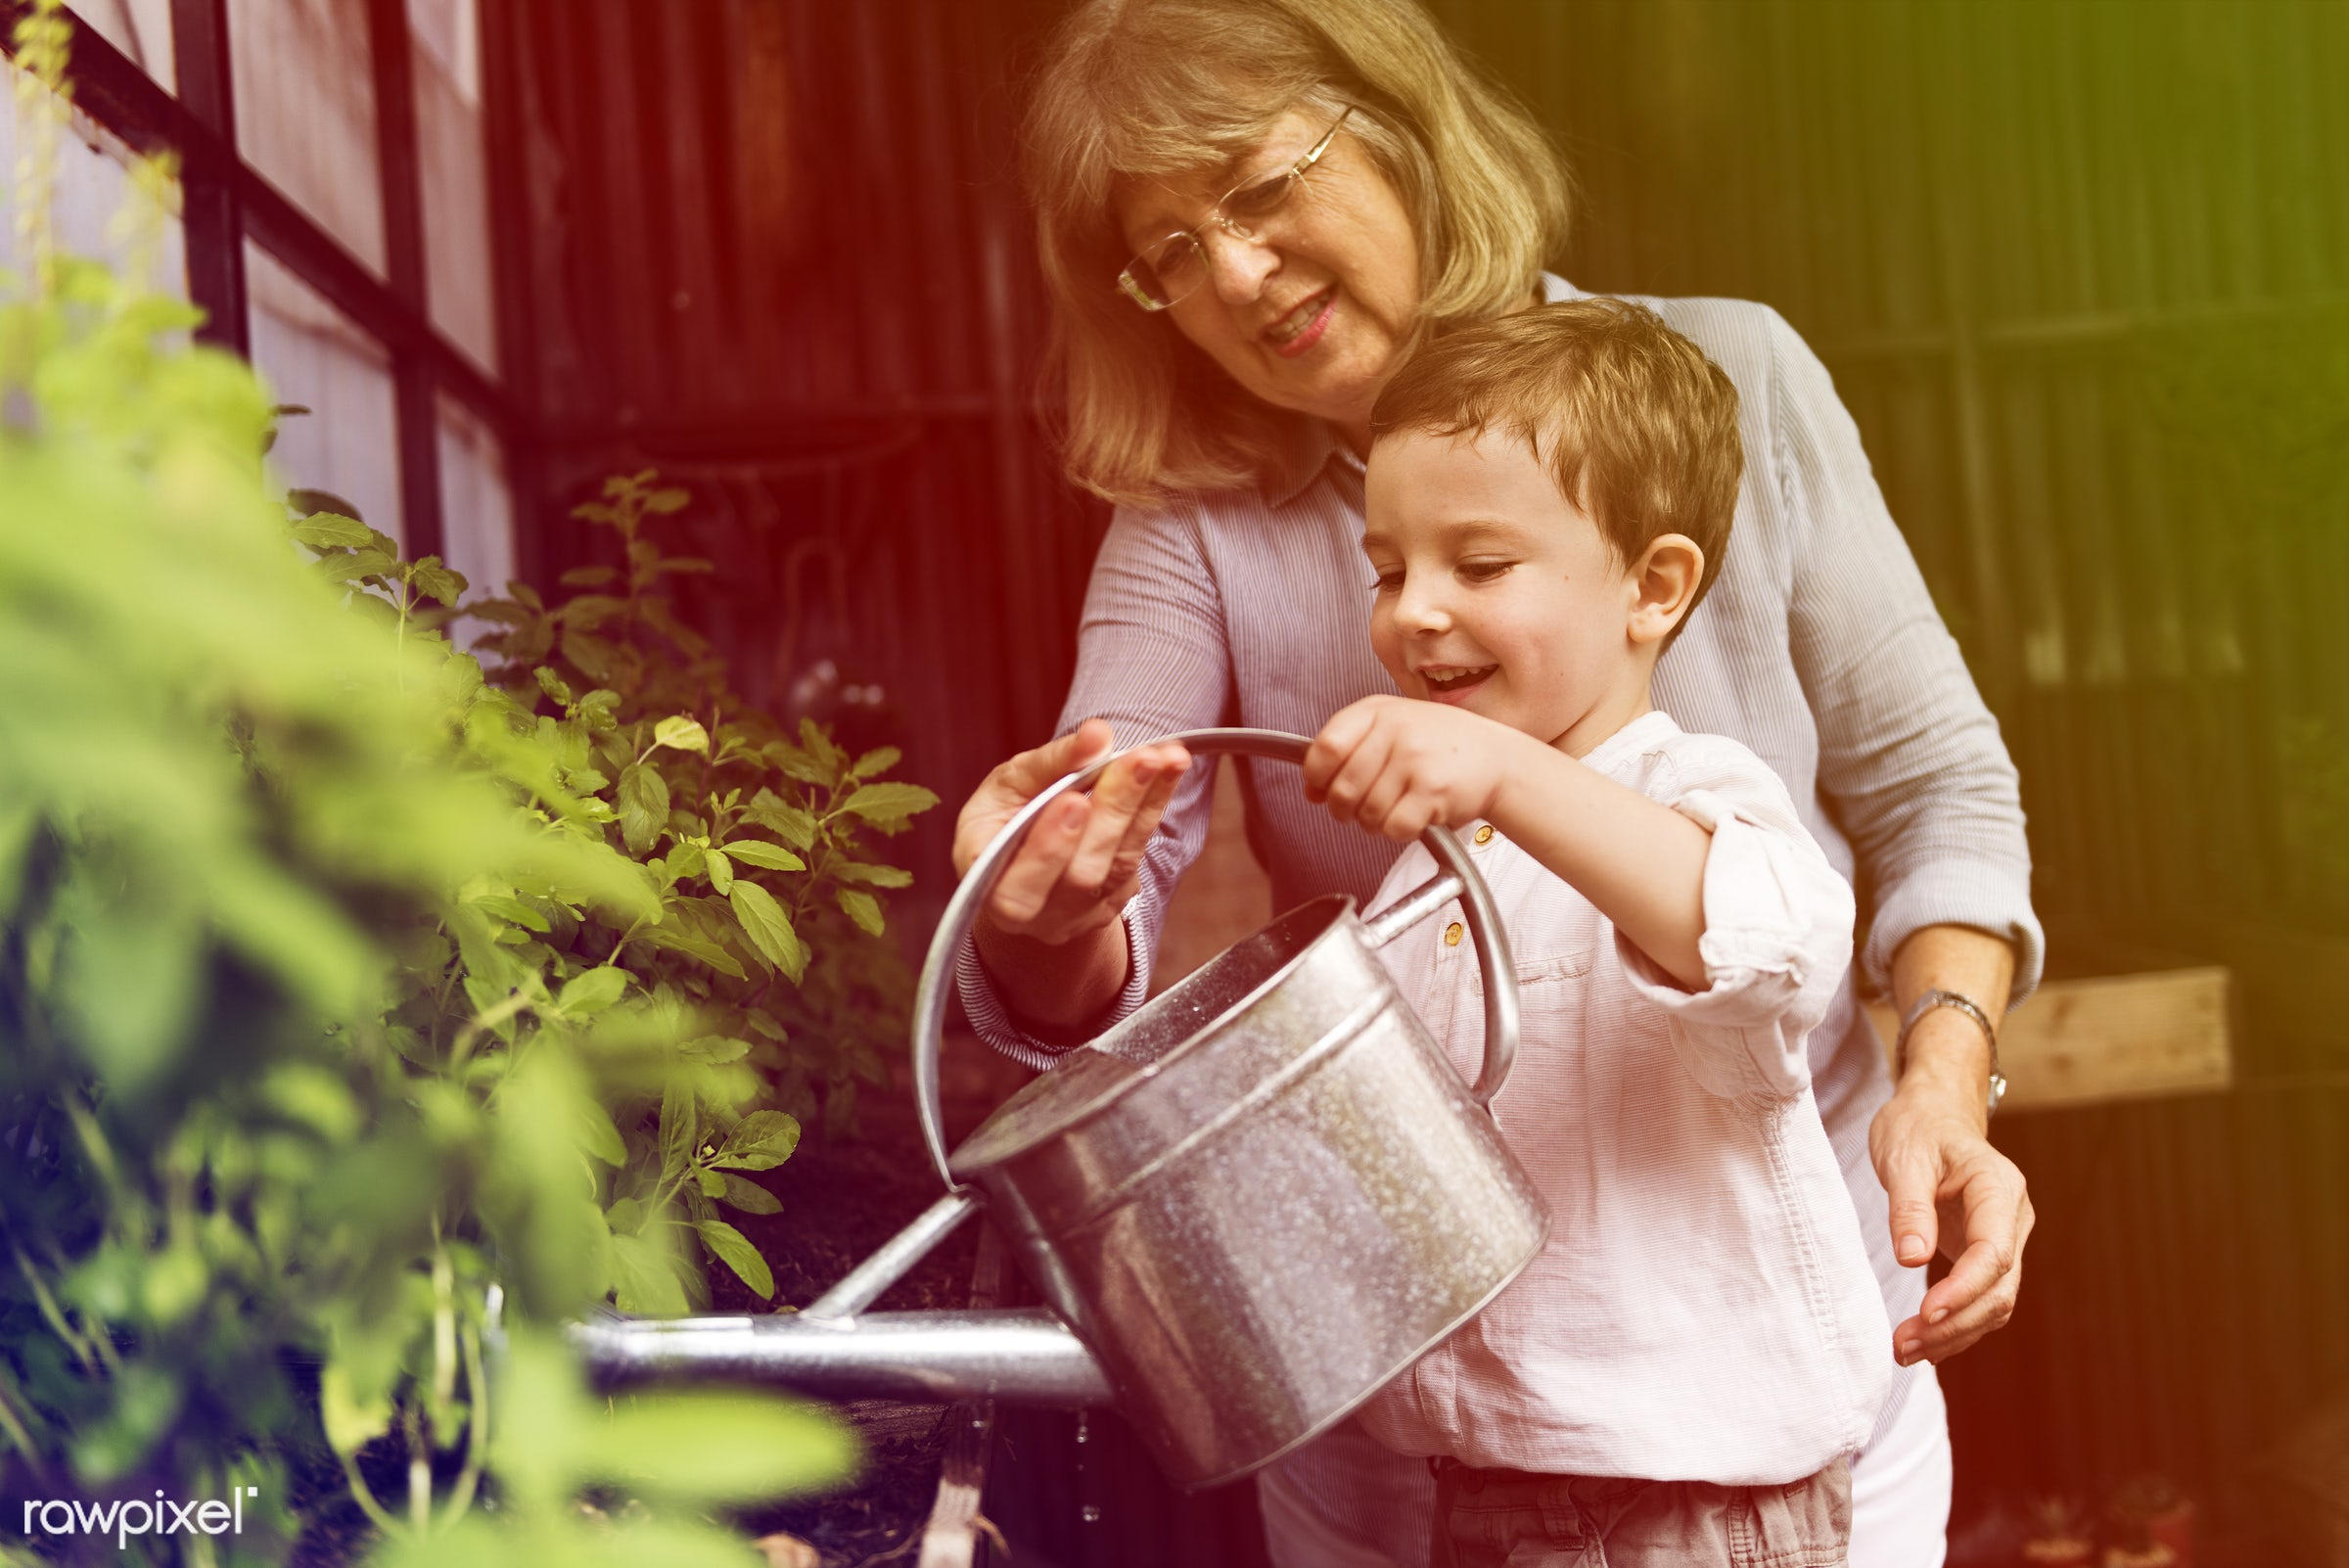 watering, recreation, people, together, kid, nature, woman, interest, childhood, grandson, grandma, generation, hobby,...